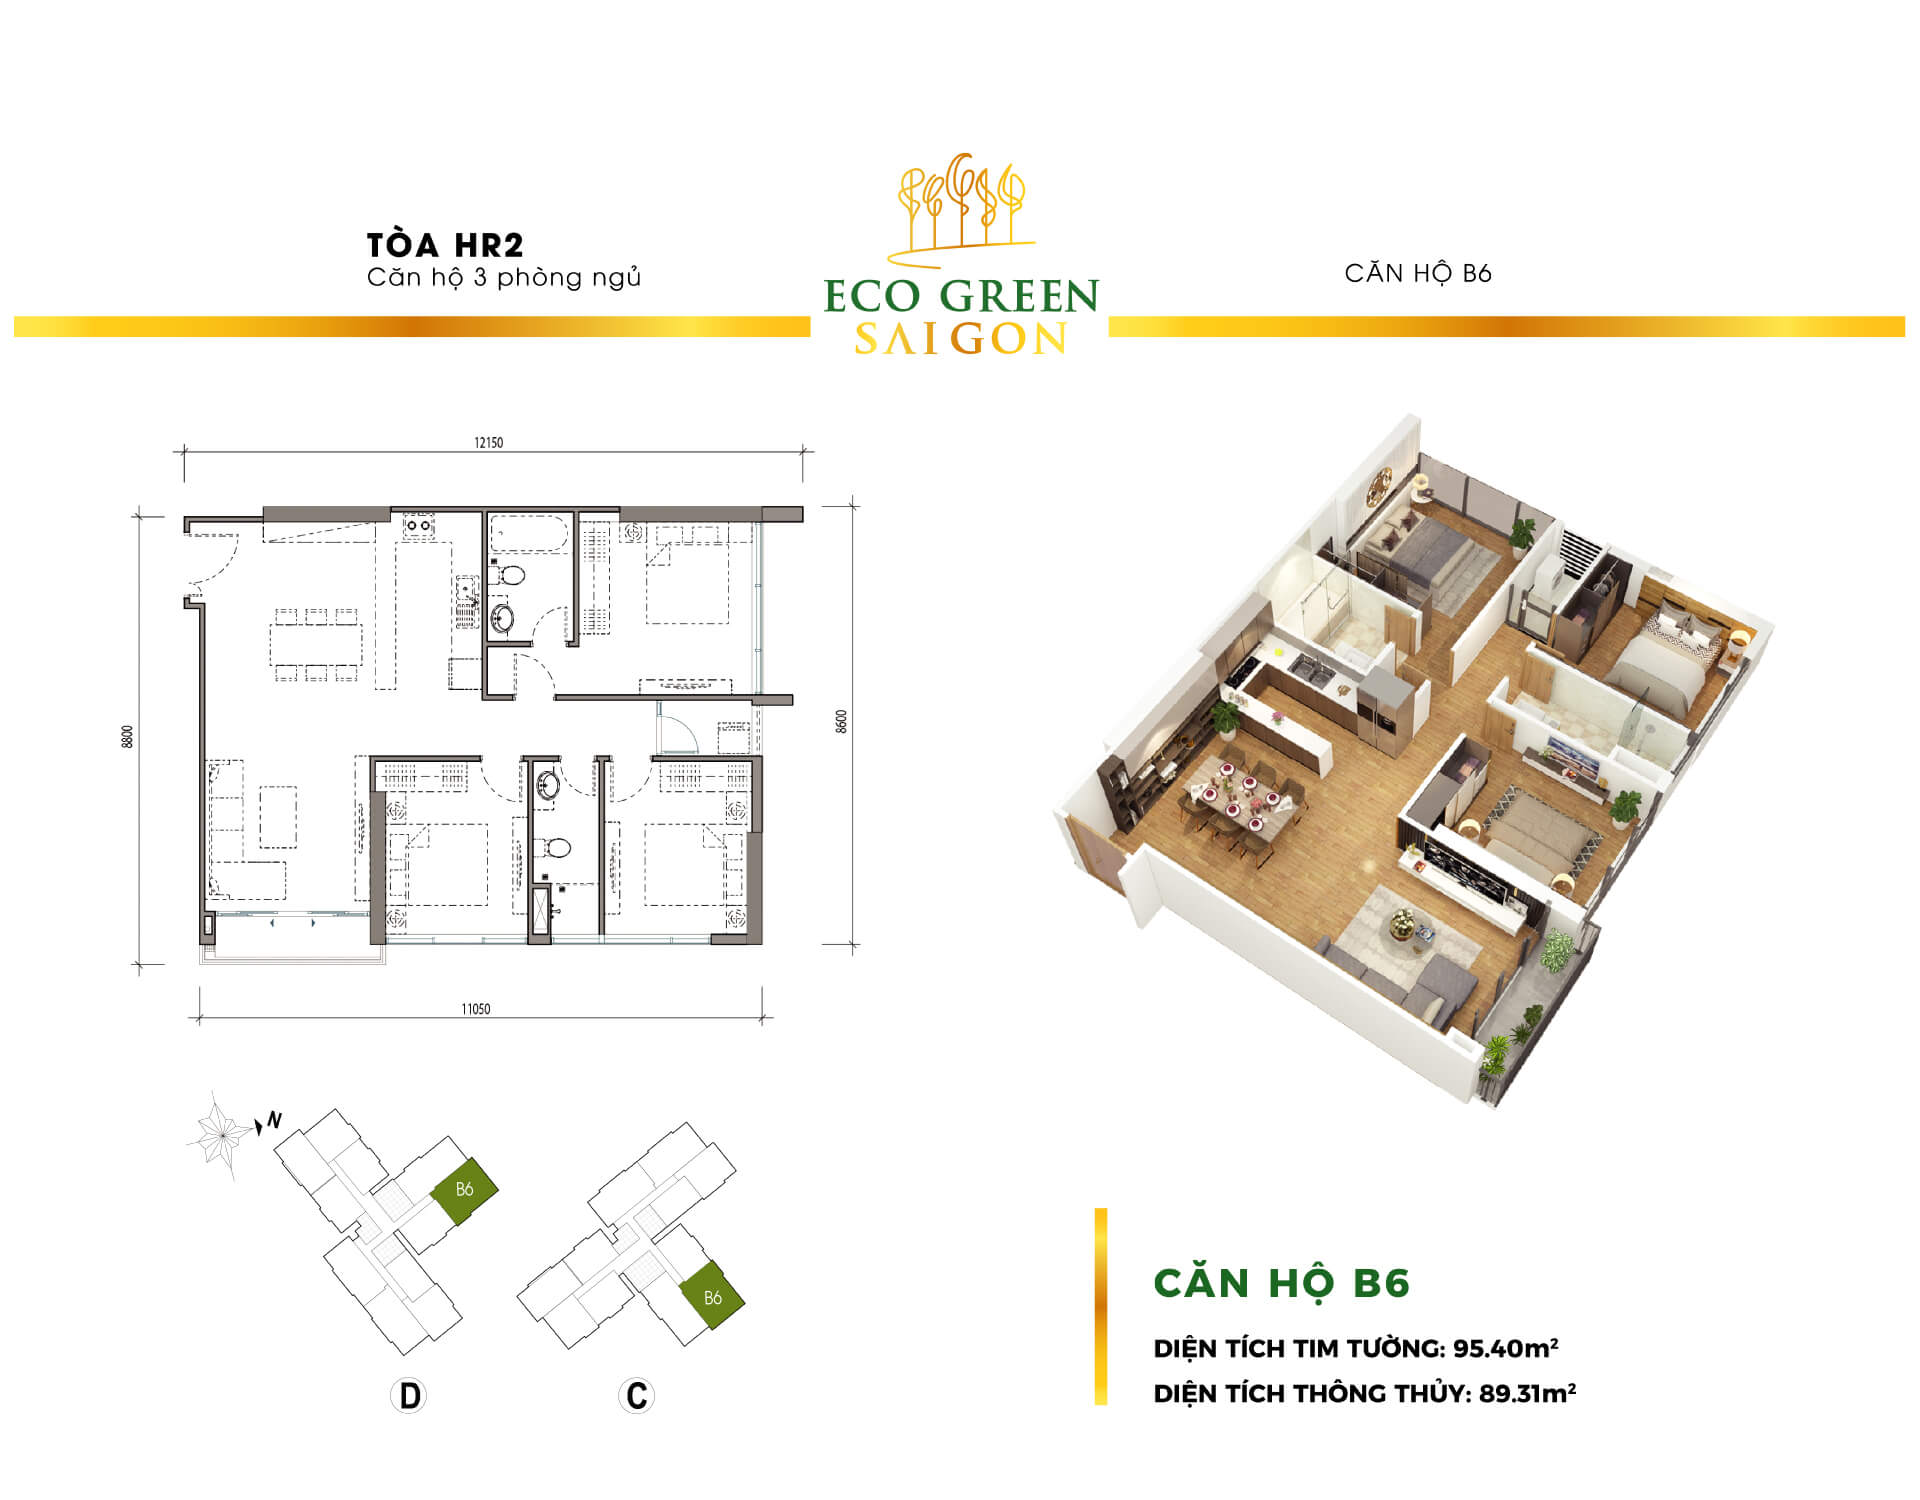 b6-eco-green-saigon